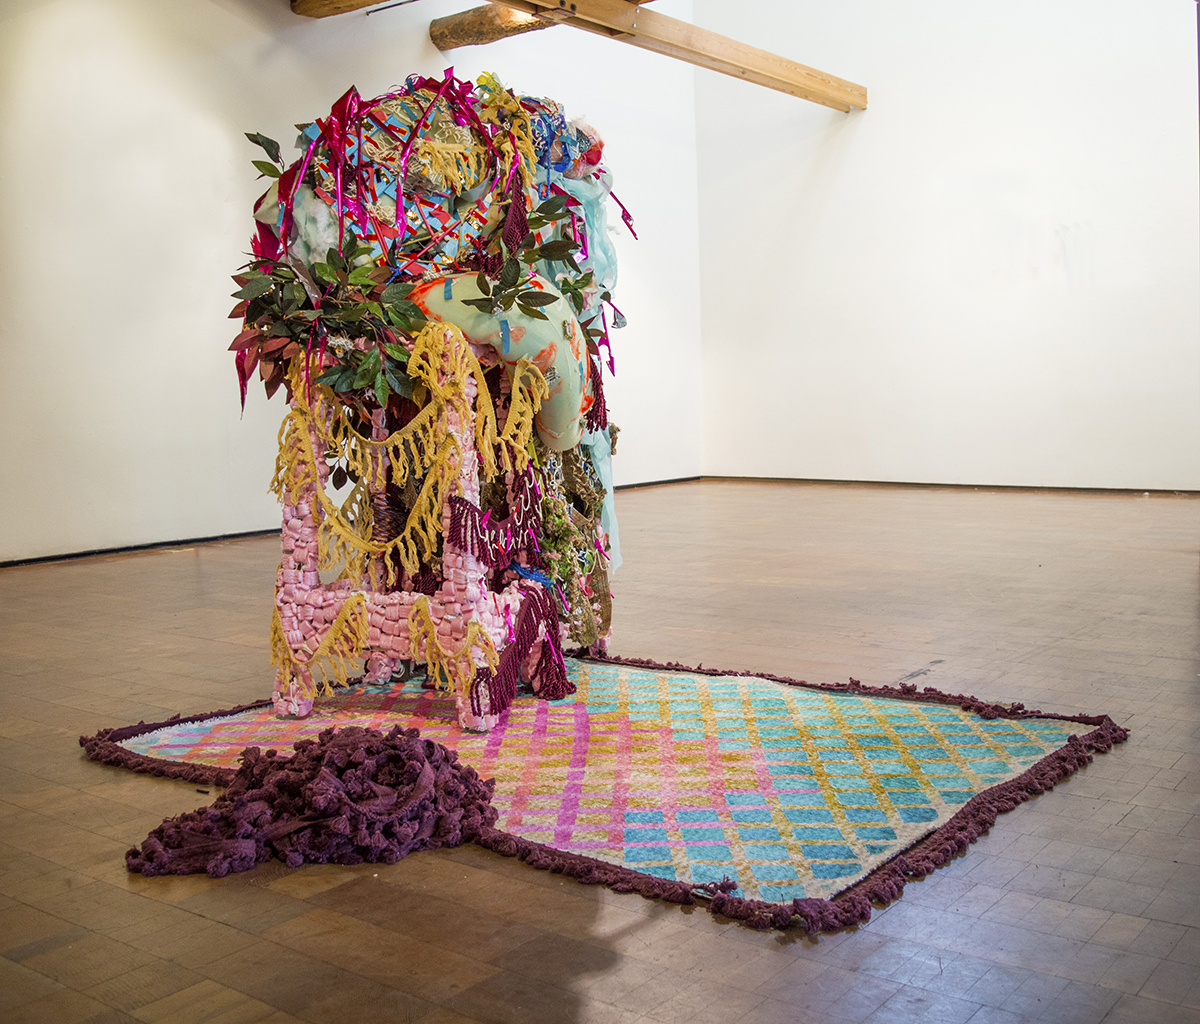 Peterson_Lauren_Howdy Neighbor and other colloquialisms having to do with biscuits and pies, Acrylic on stools, fabric, fencing, mattress topper, basket and artificial flowers, etal, 4x3x5ft_2019